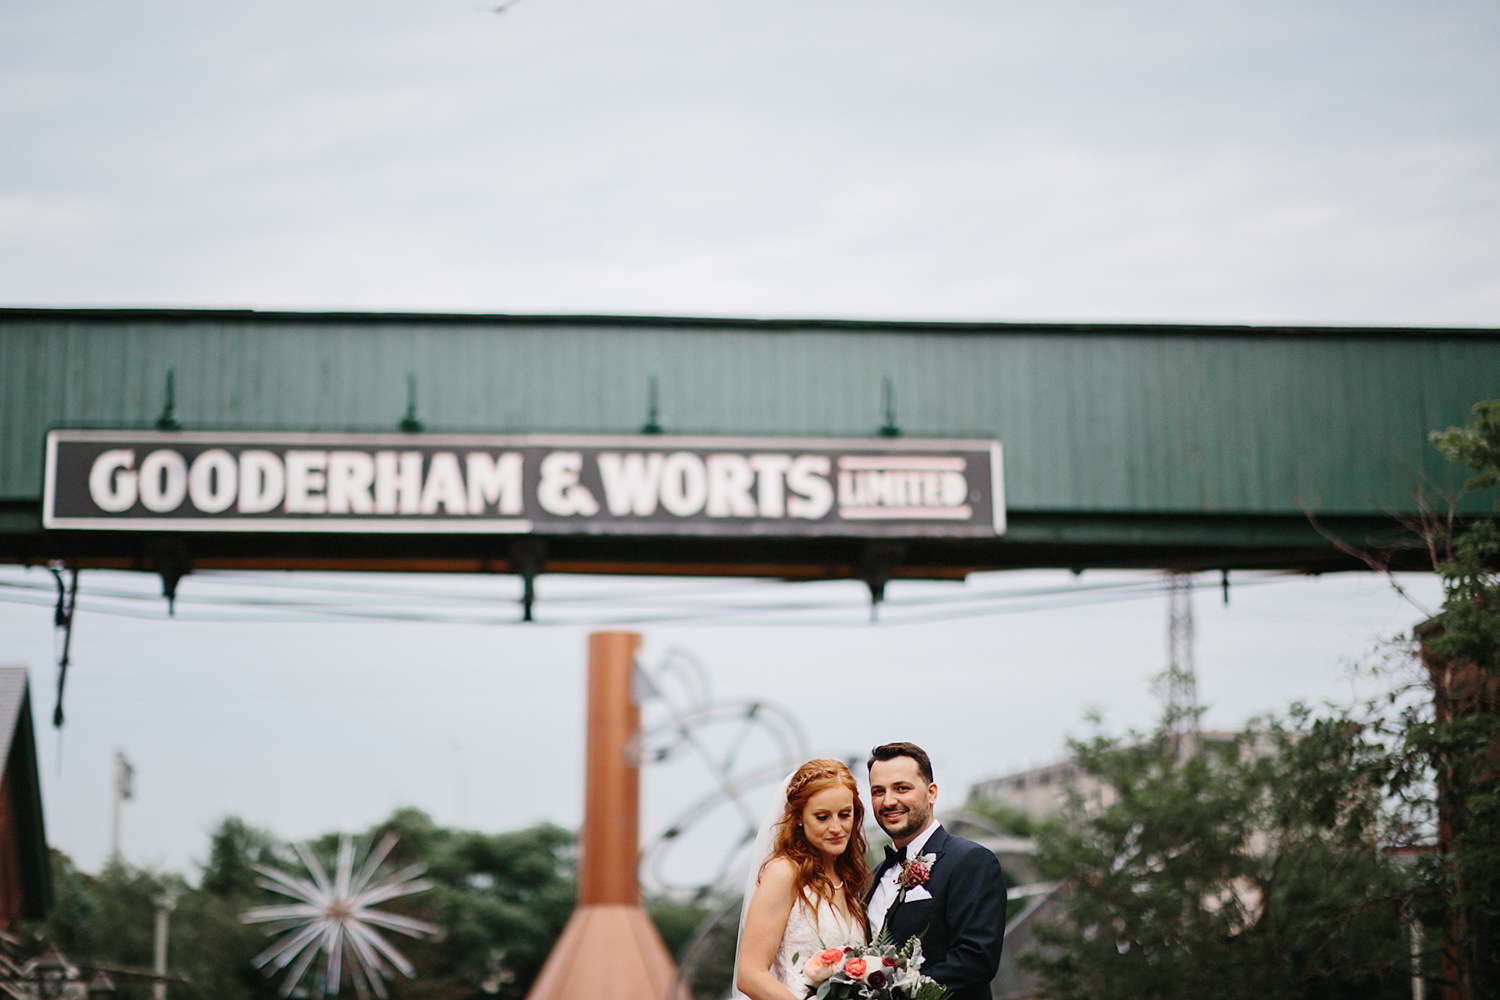 torontos-best-documentary-wedding-photographers-ryanne-hollies-photography-fine-art-photojournalism-artistic-moody-toronto-airship37-distillery-district-groom-and-bride-poratraits-intimate-authentic-moments-film-analog-photography.jpg